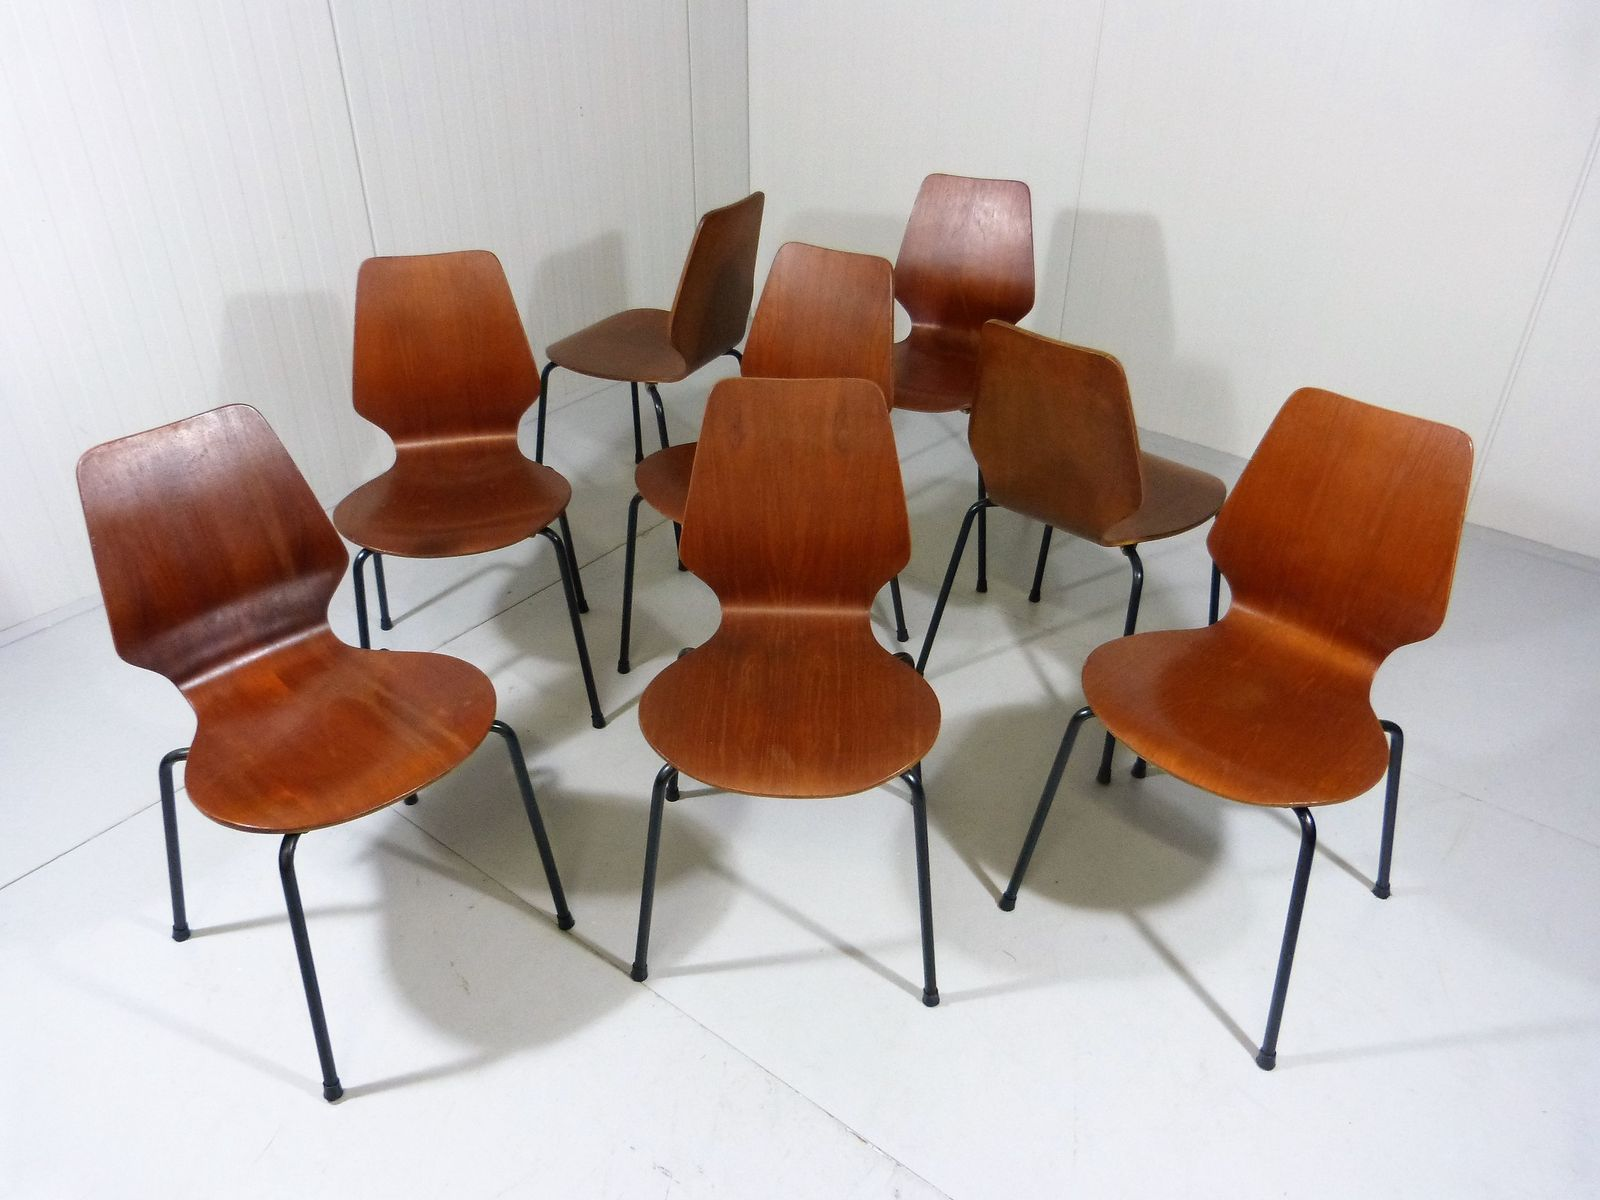 Danish Teak Plywood Stackable Chairs 1960s Set of 8 for sale at